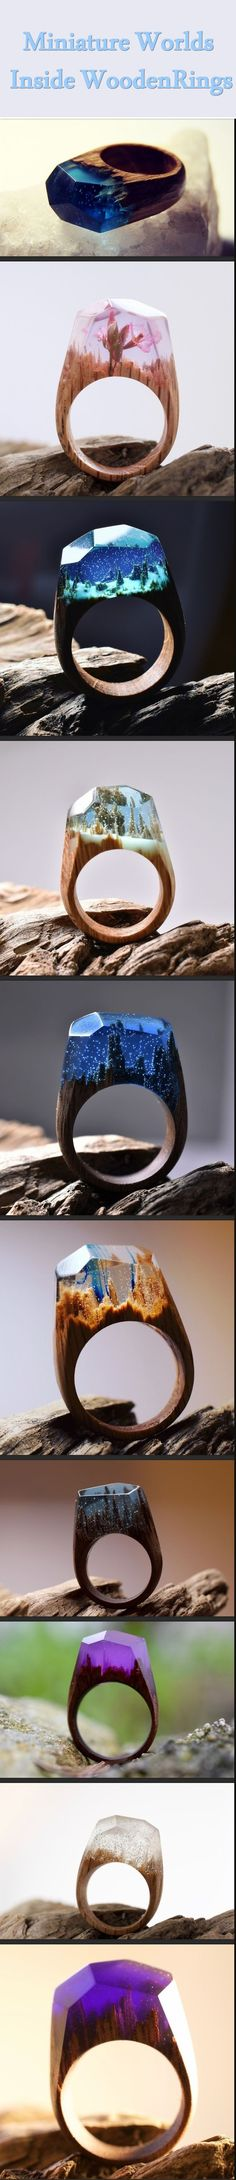 Unlike other jewelry makers, Canadian Secret Wood loves to bring more meaning to the ring designs. They craft a unique miniature world in wooden